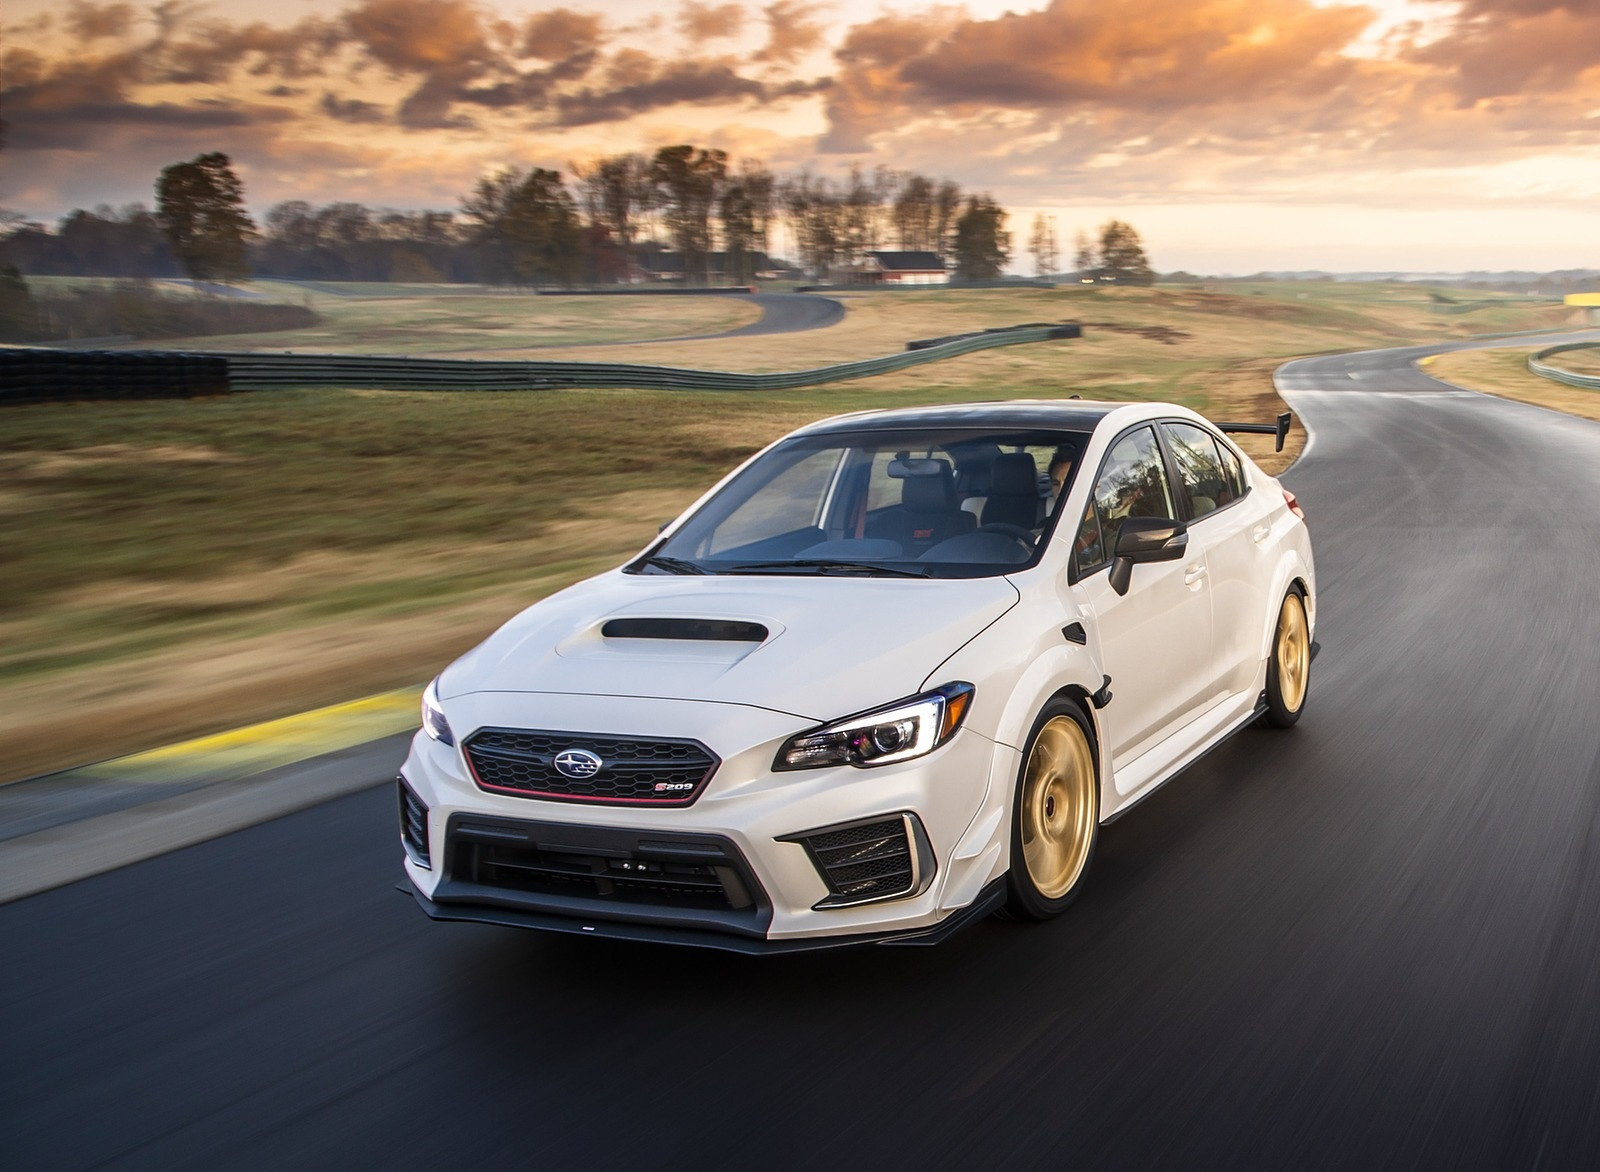 2019 Subaru WRX STI S209 Front Wallpapers (11)